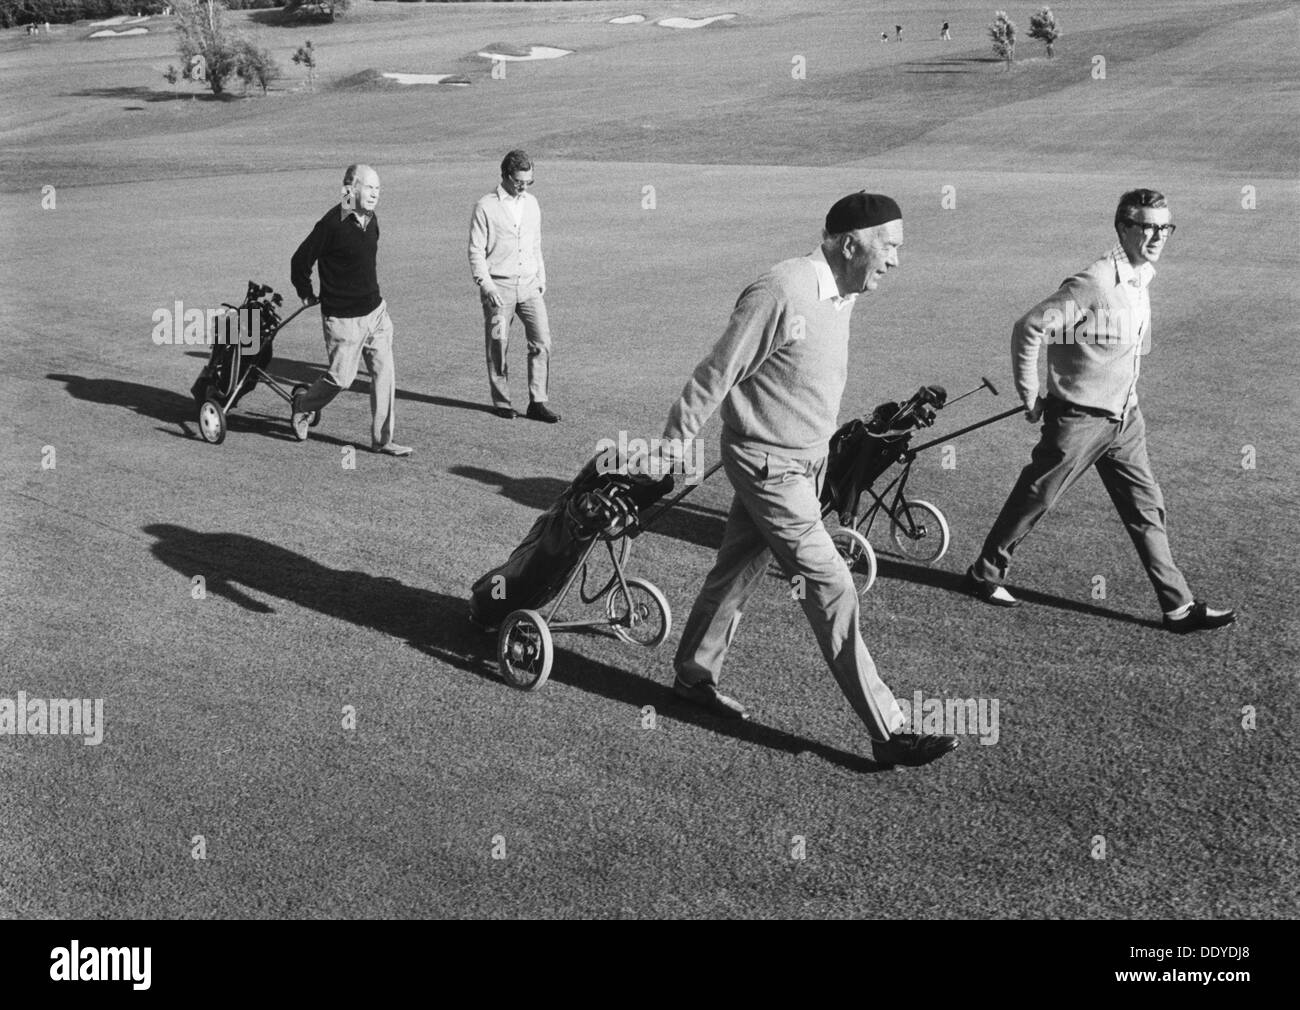 Members of the Swedish Royal Family on the golf course, Båstad, Sweden, 1973. Prince Bertil, Count Carl-Johan Bernadotte and Count Sigvard Bernadotte. Three of the sons of King Gustav VI Adolf of Sweden. - Stock Image